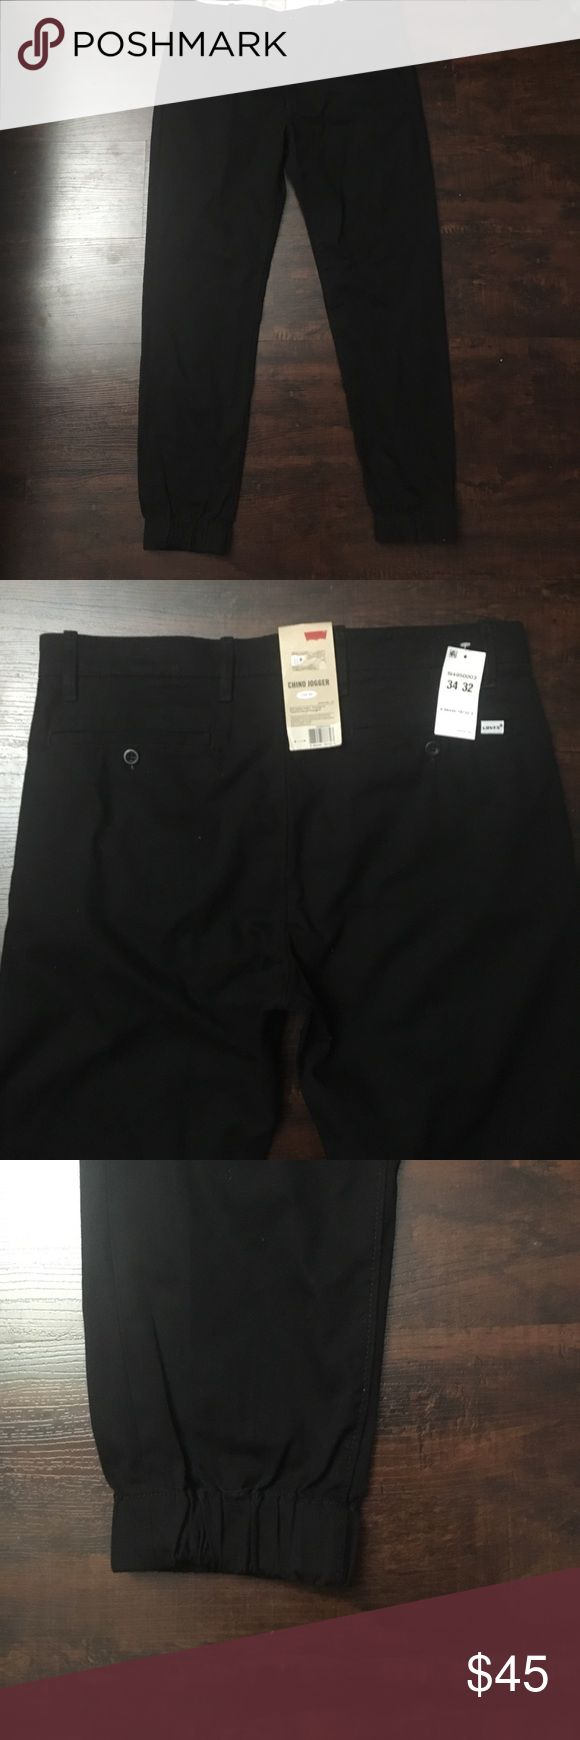 Levi men's chino joggers Levi's black men chino joggers size 34 x 32 Levi's Pants Sweatpants & Joggers